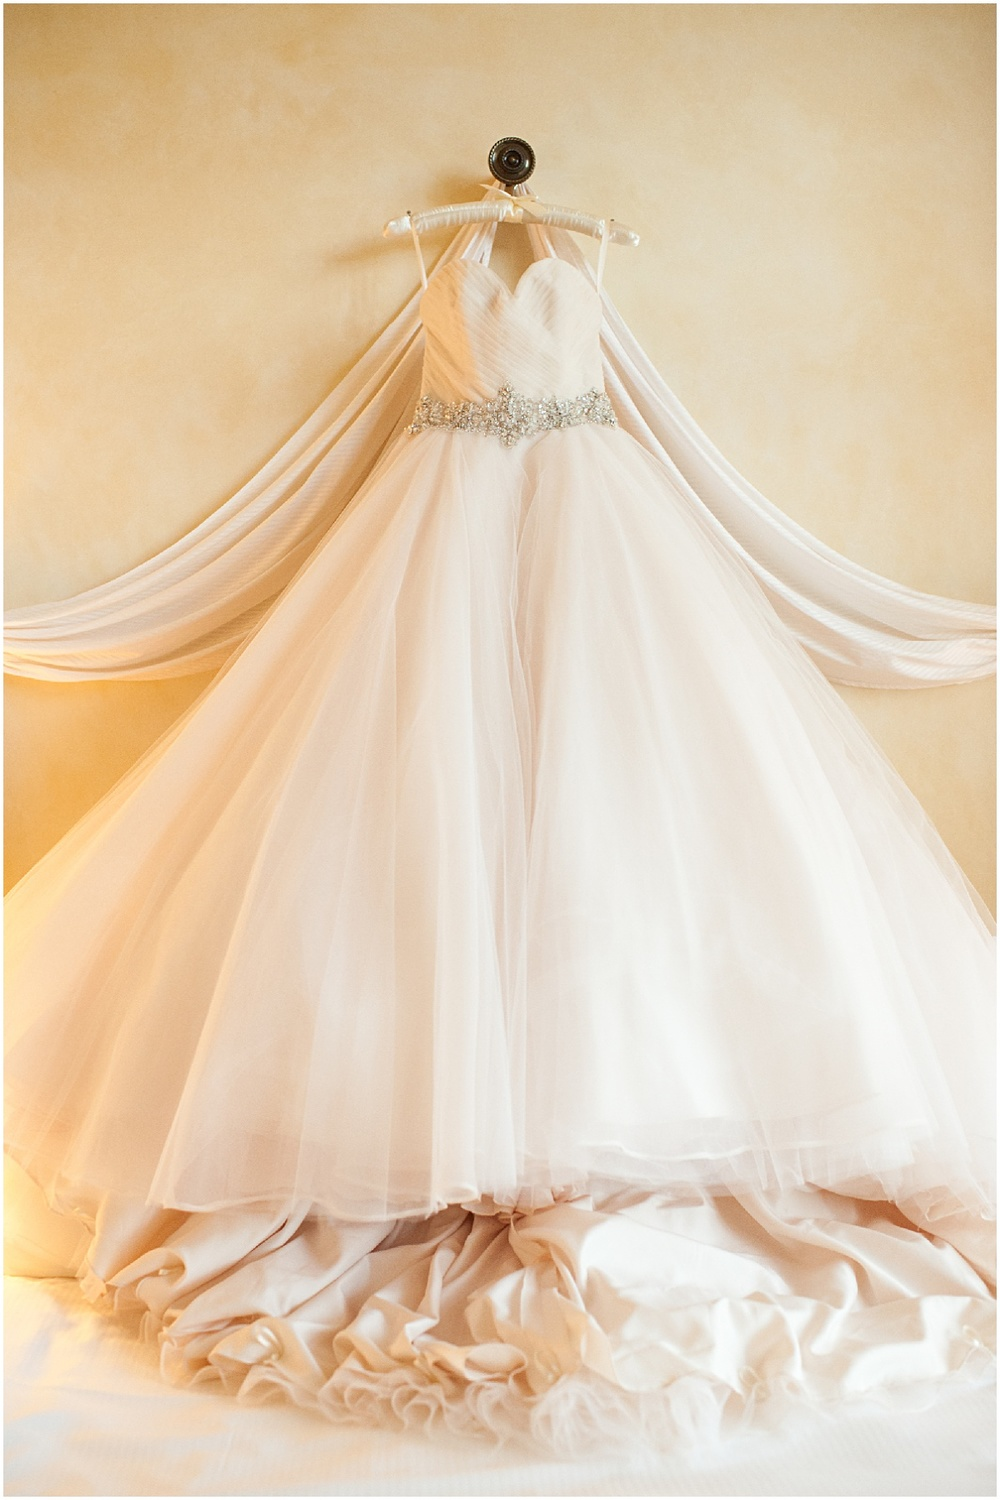 white ballgown wedding dress hung at the biltmore hotel